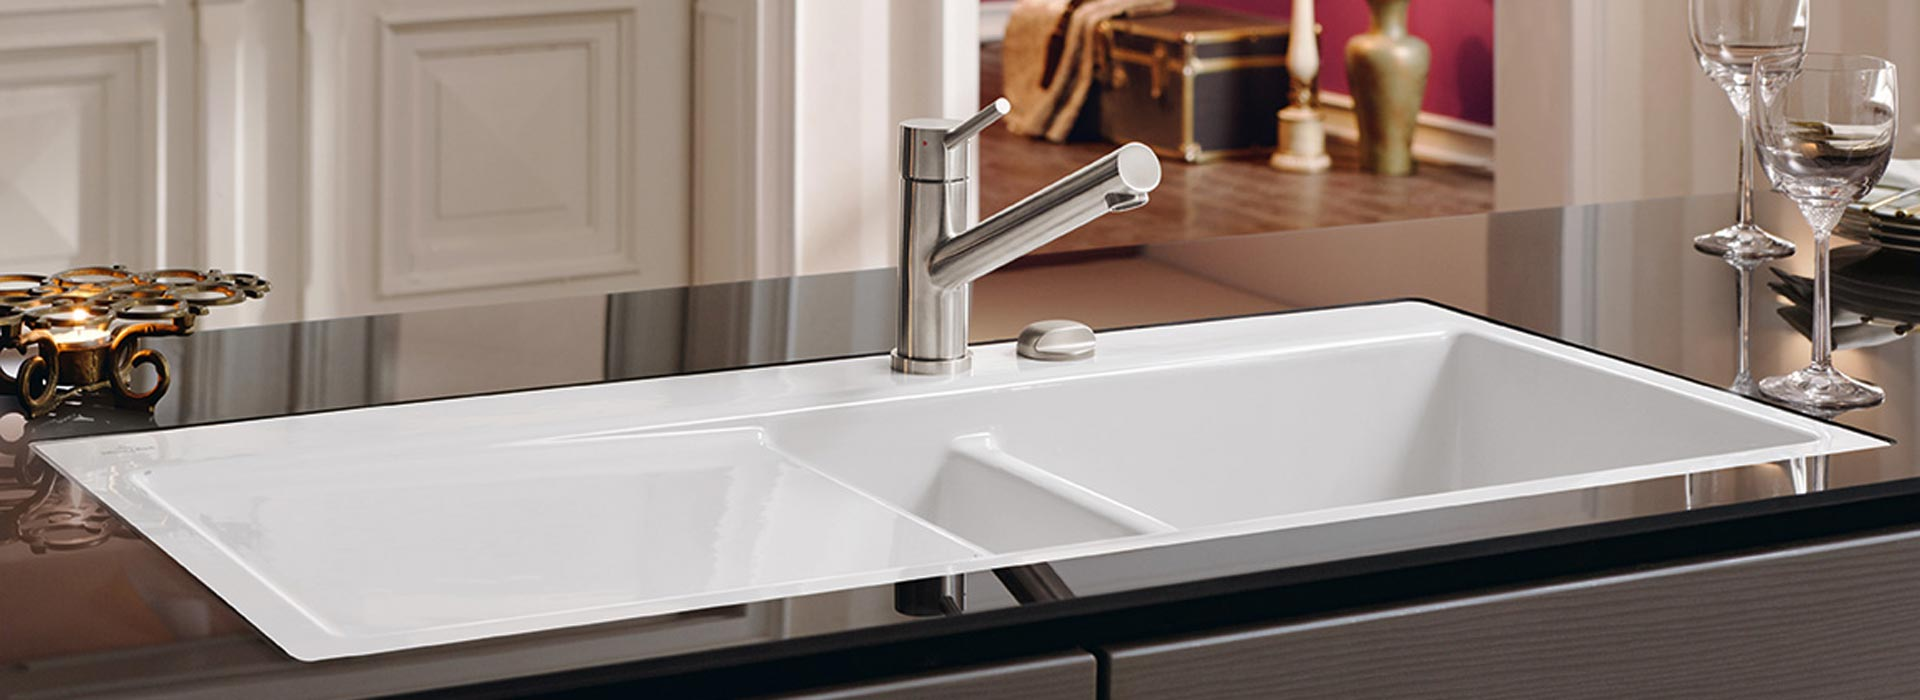 Genial Subway 60 Flat, Kitchen Tap Cosmo